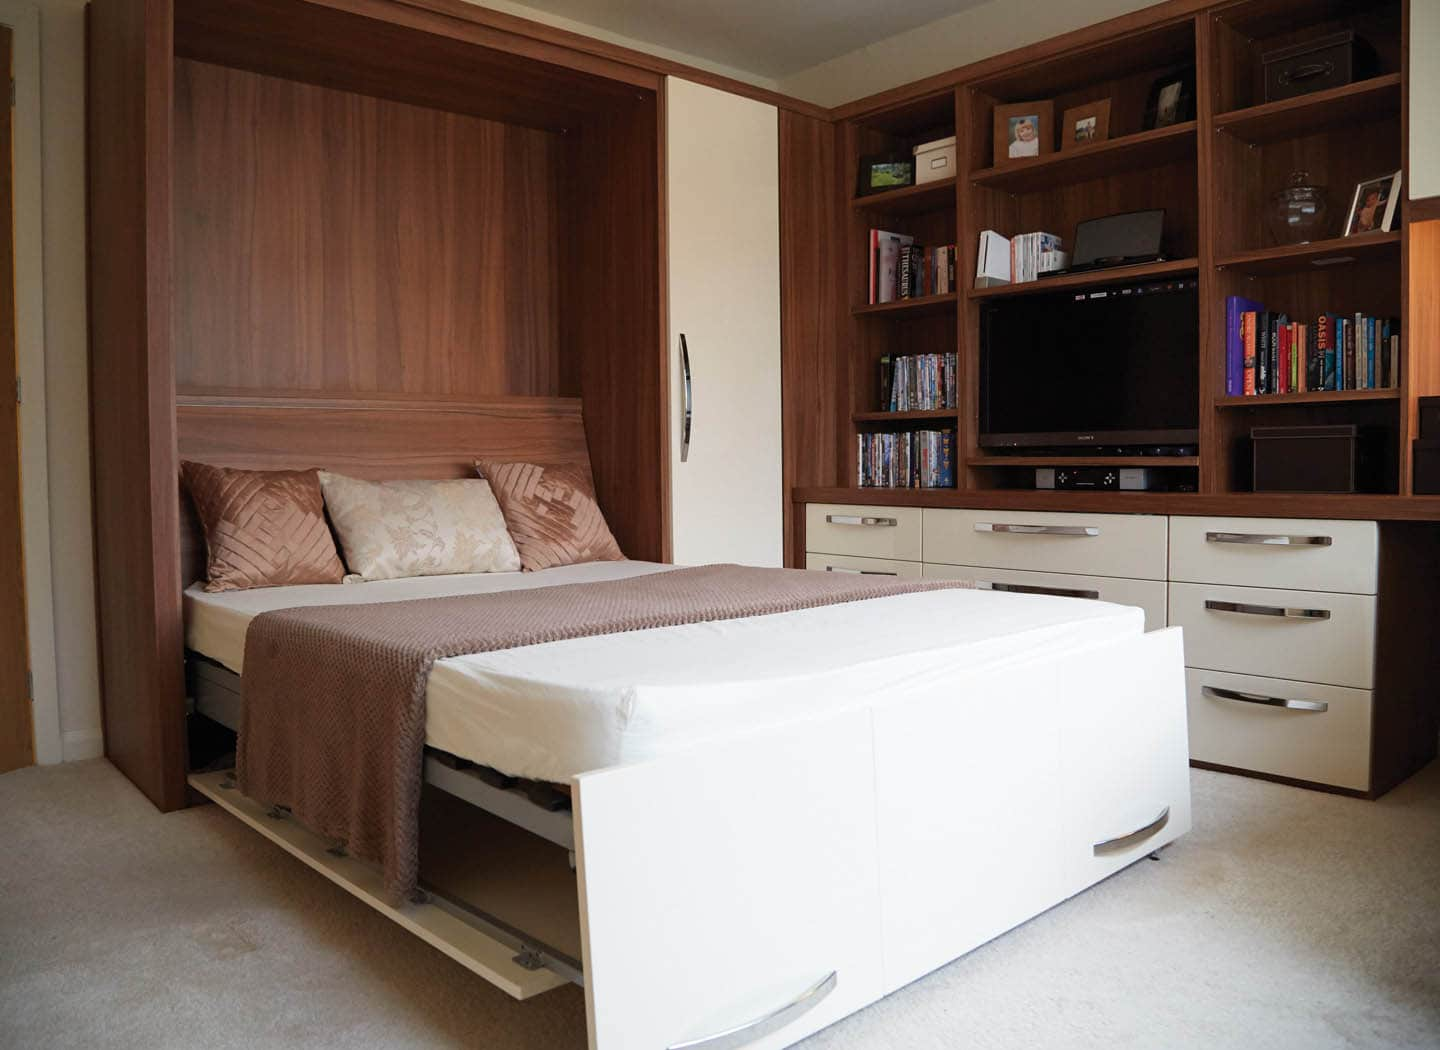 Fitted lounge with open wall bed